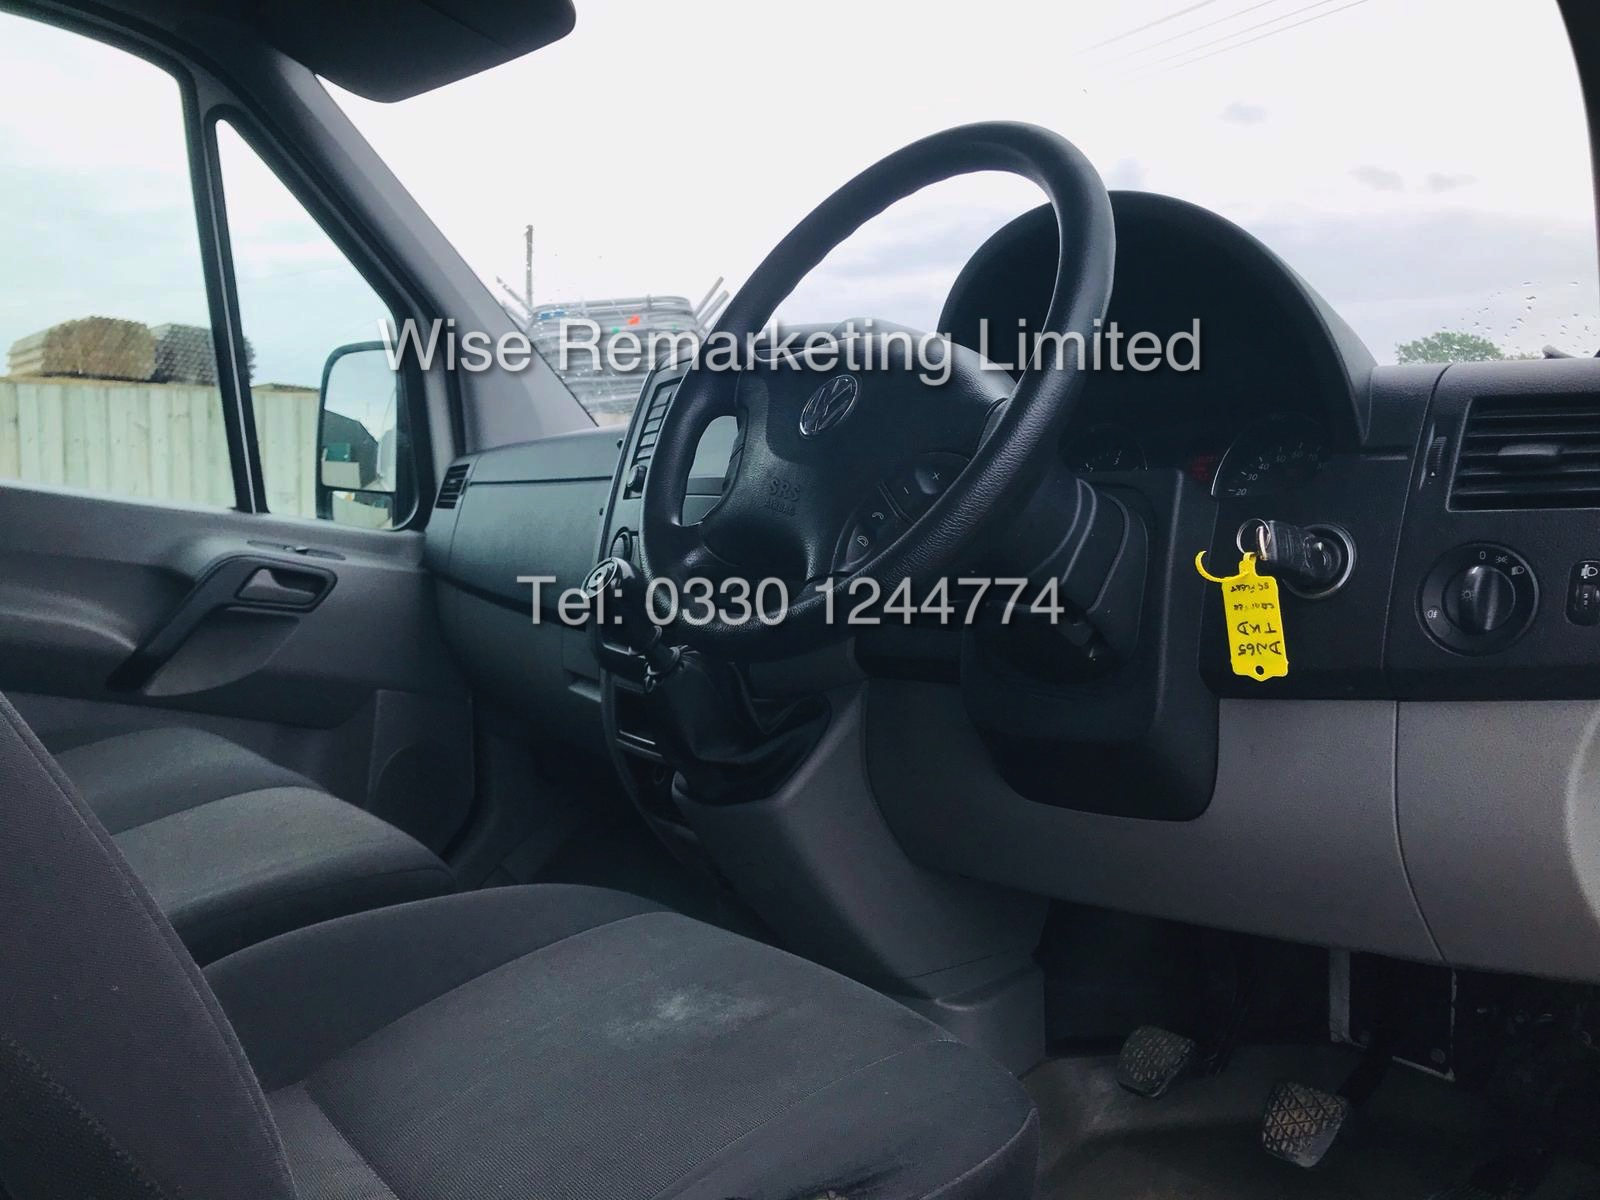 VOLKSWAGEN CRAFTER CR35 2.0 TDI LONG WHEEL BASE 2016 MODEL - Image 11 of 14